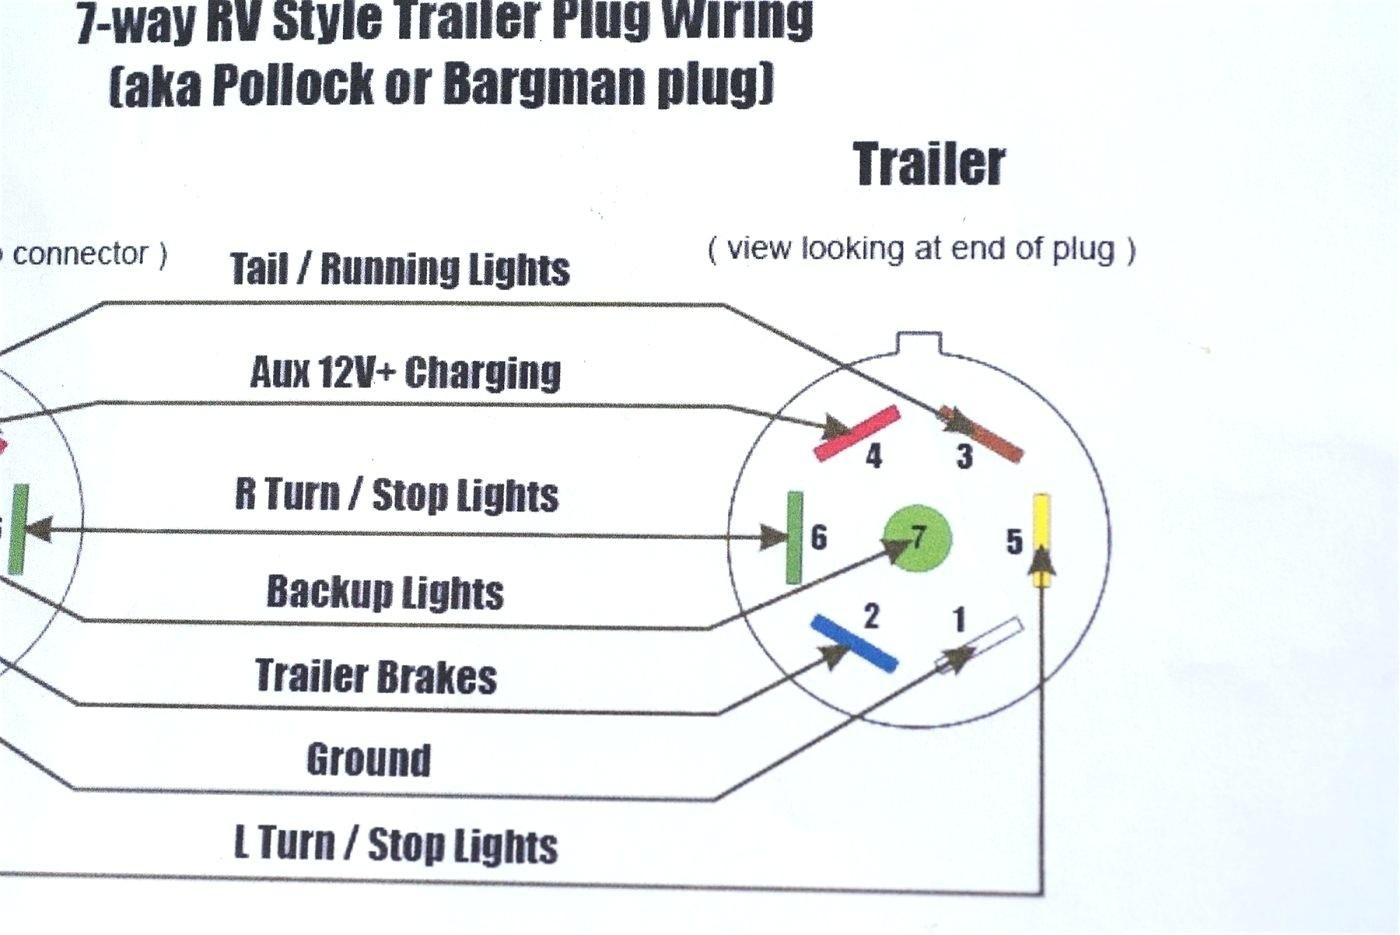 6 Pin Wiring Diagram - Data Wiring Diagram Schematic - Trailer Lights Wiring Diagram 6 Pin